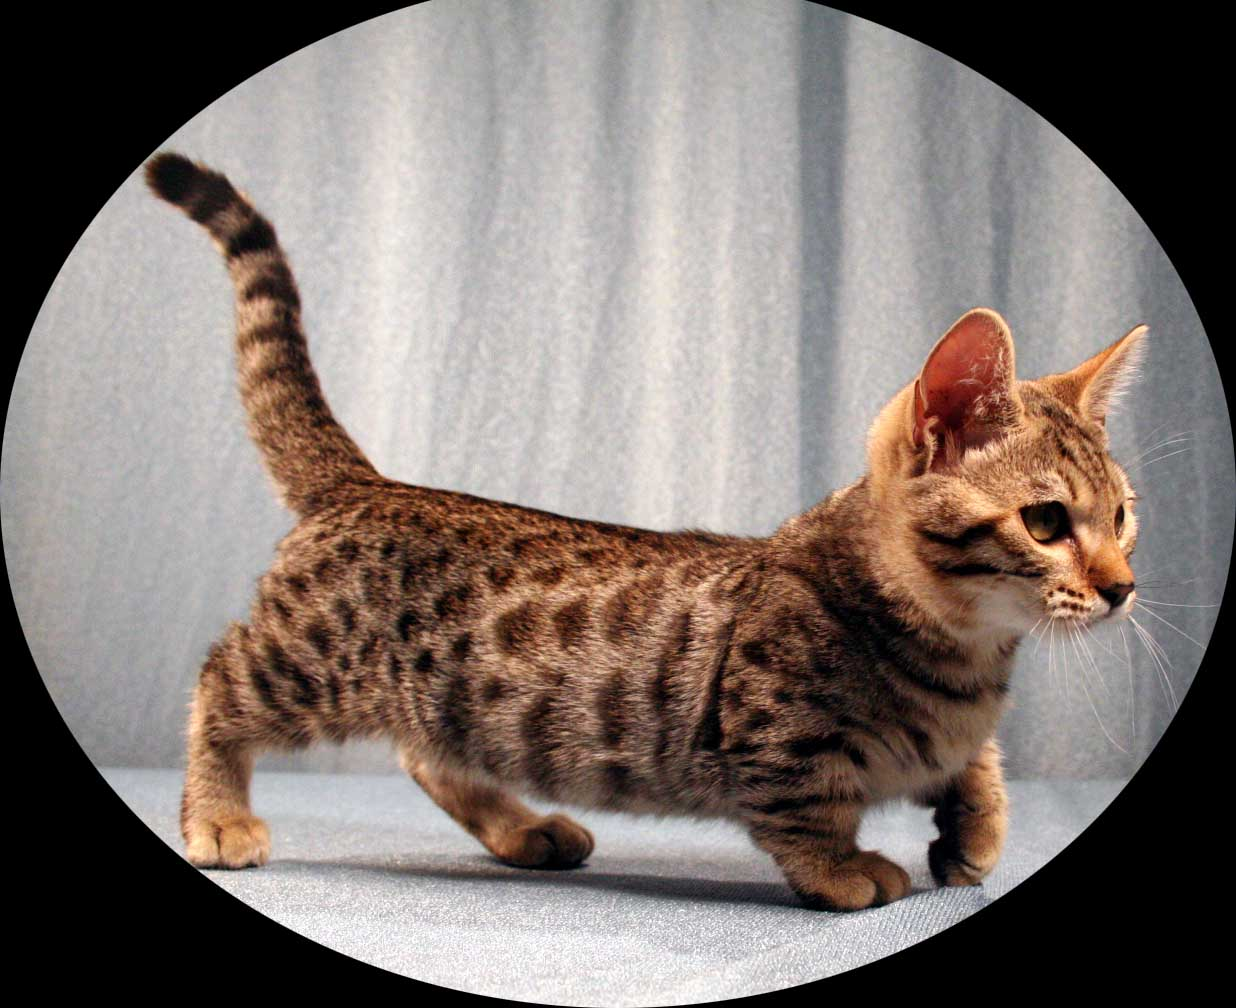 Dwarf Kitten: Dwarf Smallest Breeds Of Cats